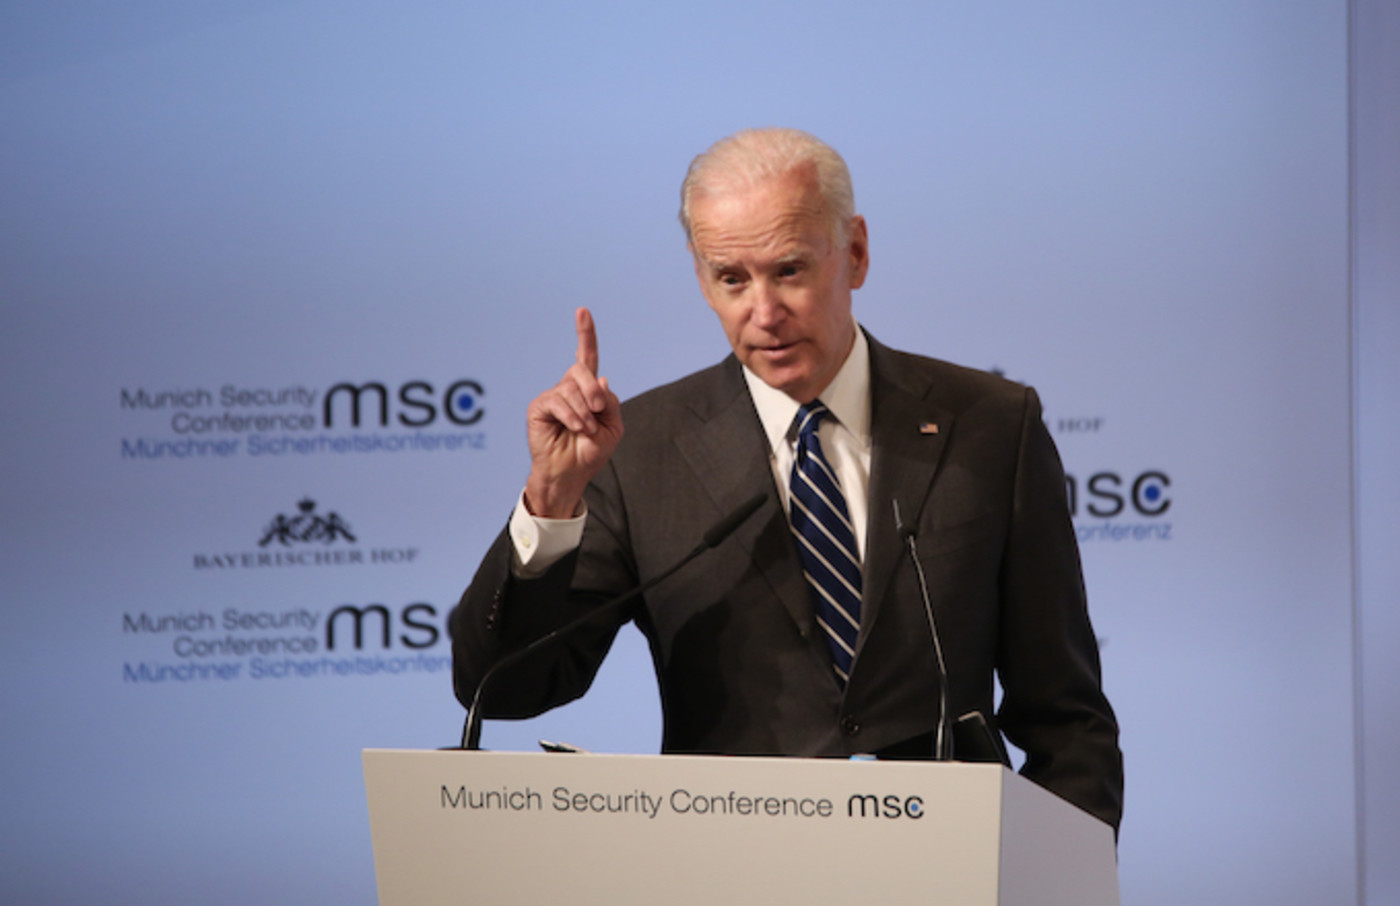 Joe Biden spoke at the Munich Security Conference